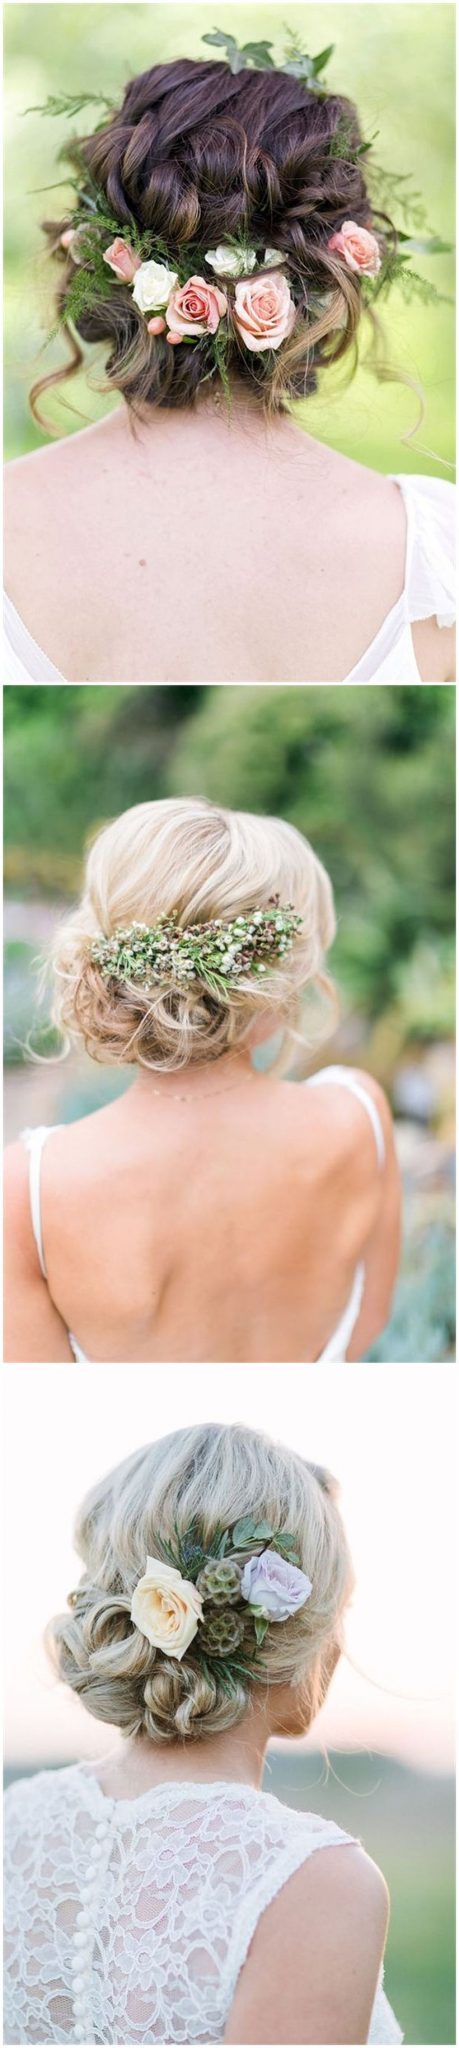 Gorgeous rustic wedding hairstyles ideas 86